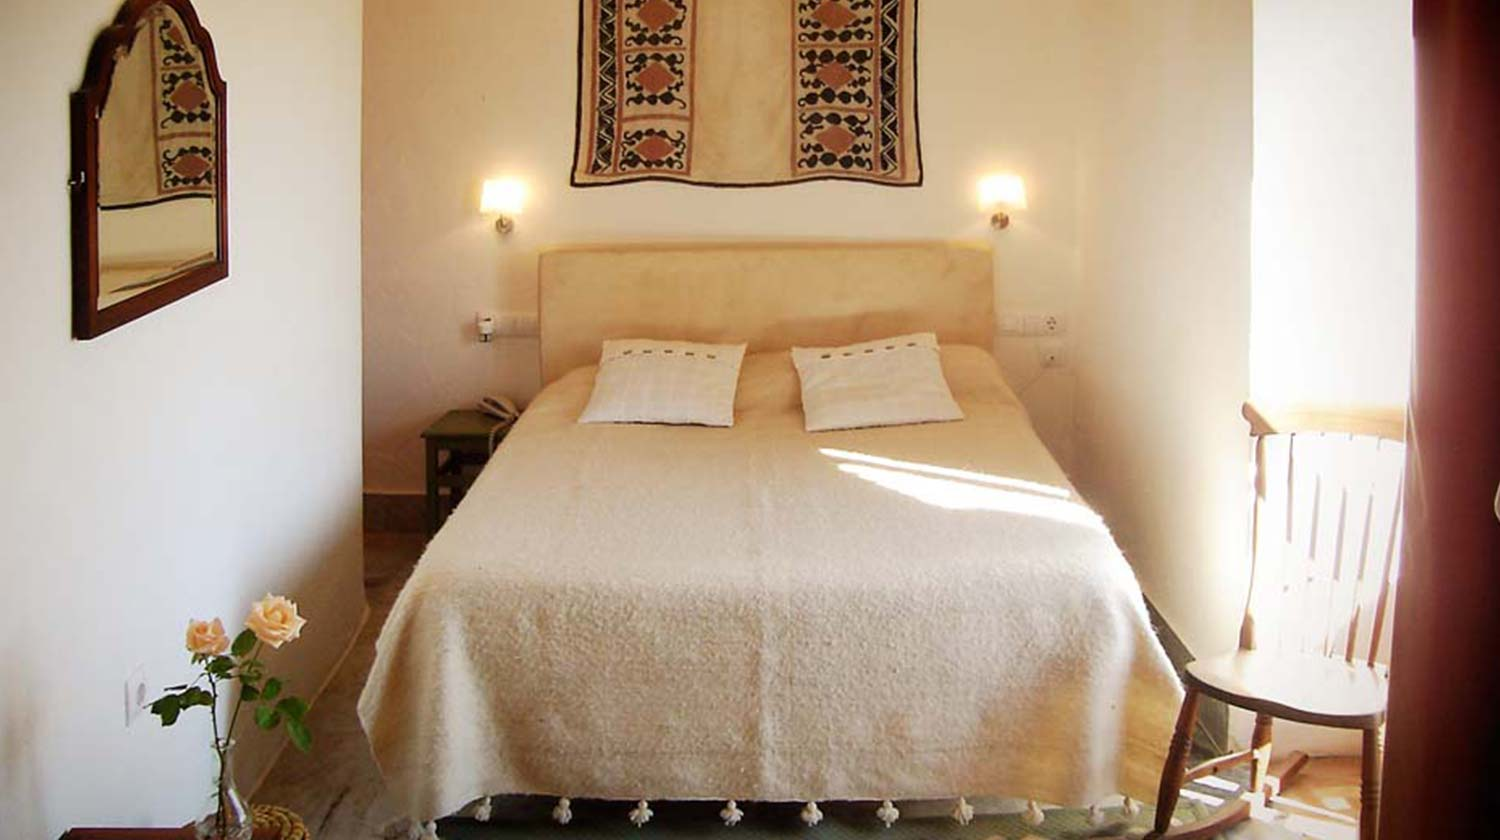 A double bedroom in our accommodation in Arcos de la Frontera